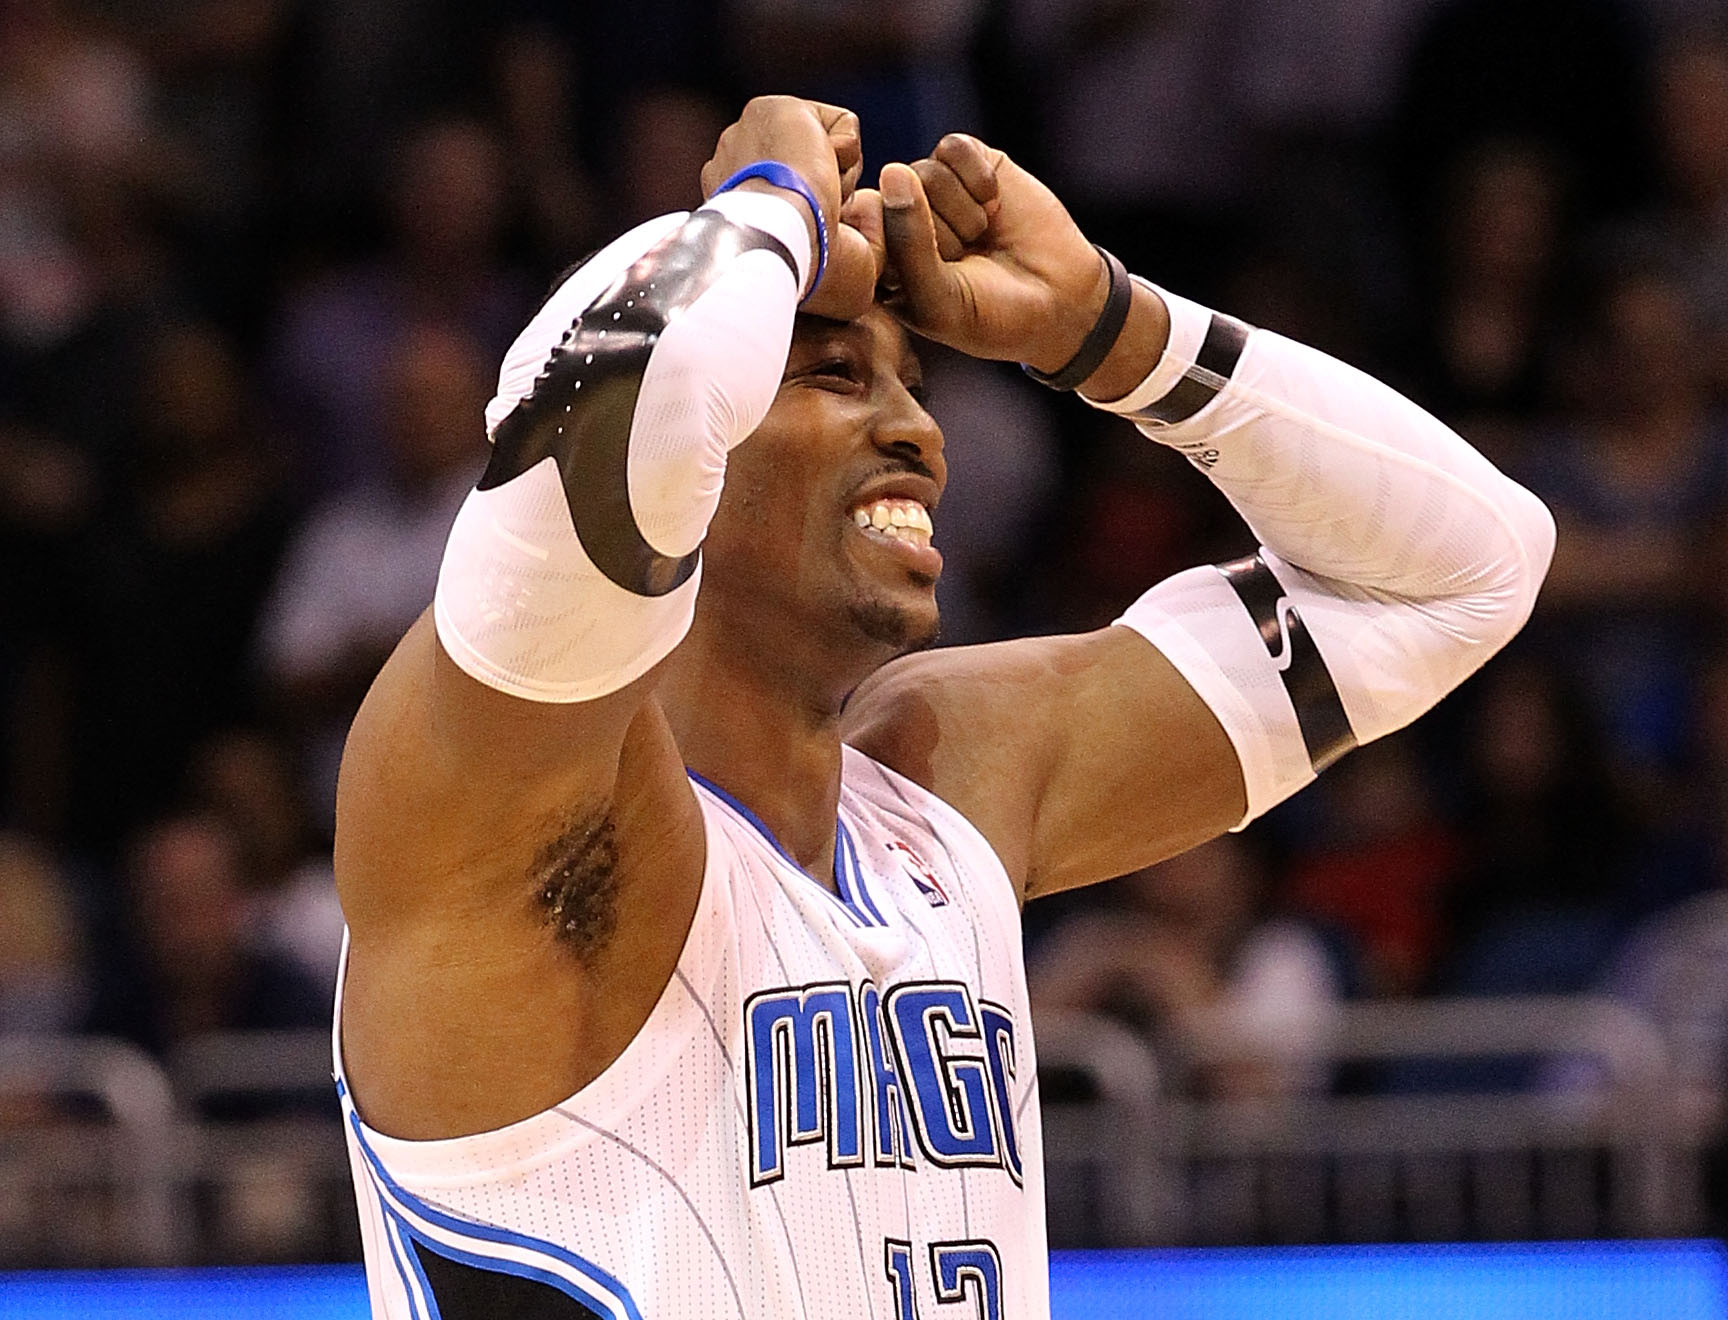 Dwight Howard has indicated the Nets are the only team he will re-sign with after the season. (Getty Images)